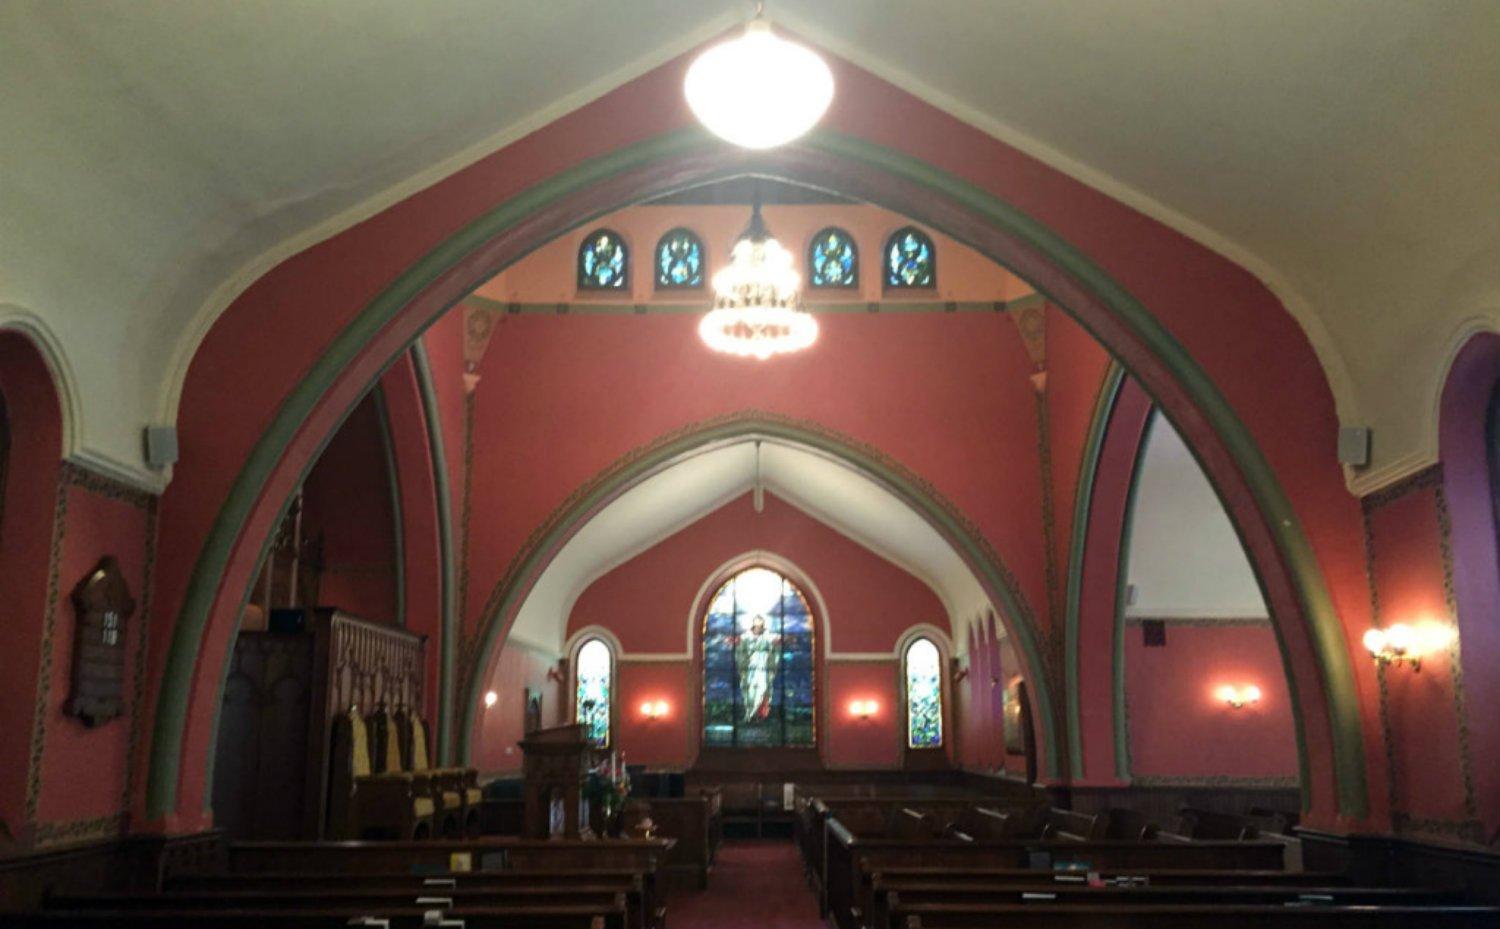 Pullman Memorial Universalist Church – Albion, NY